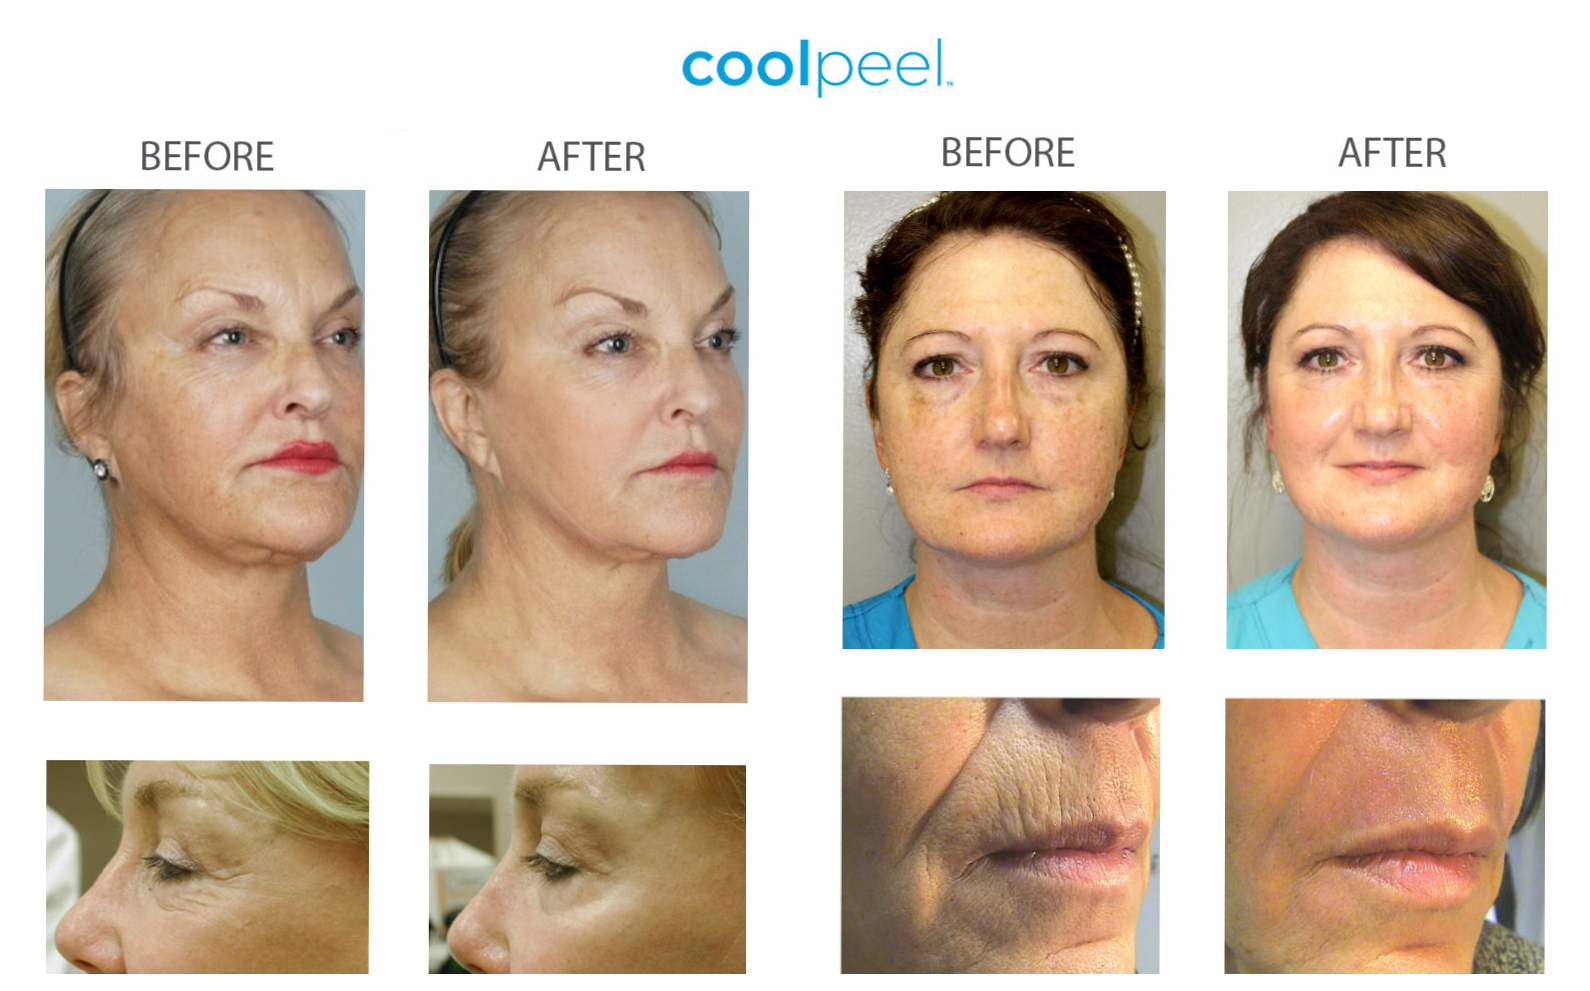 Before and after CoolPeel.